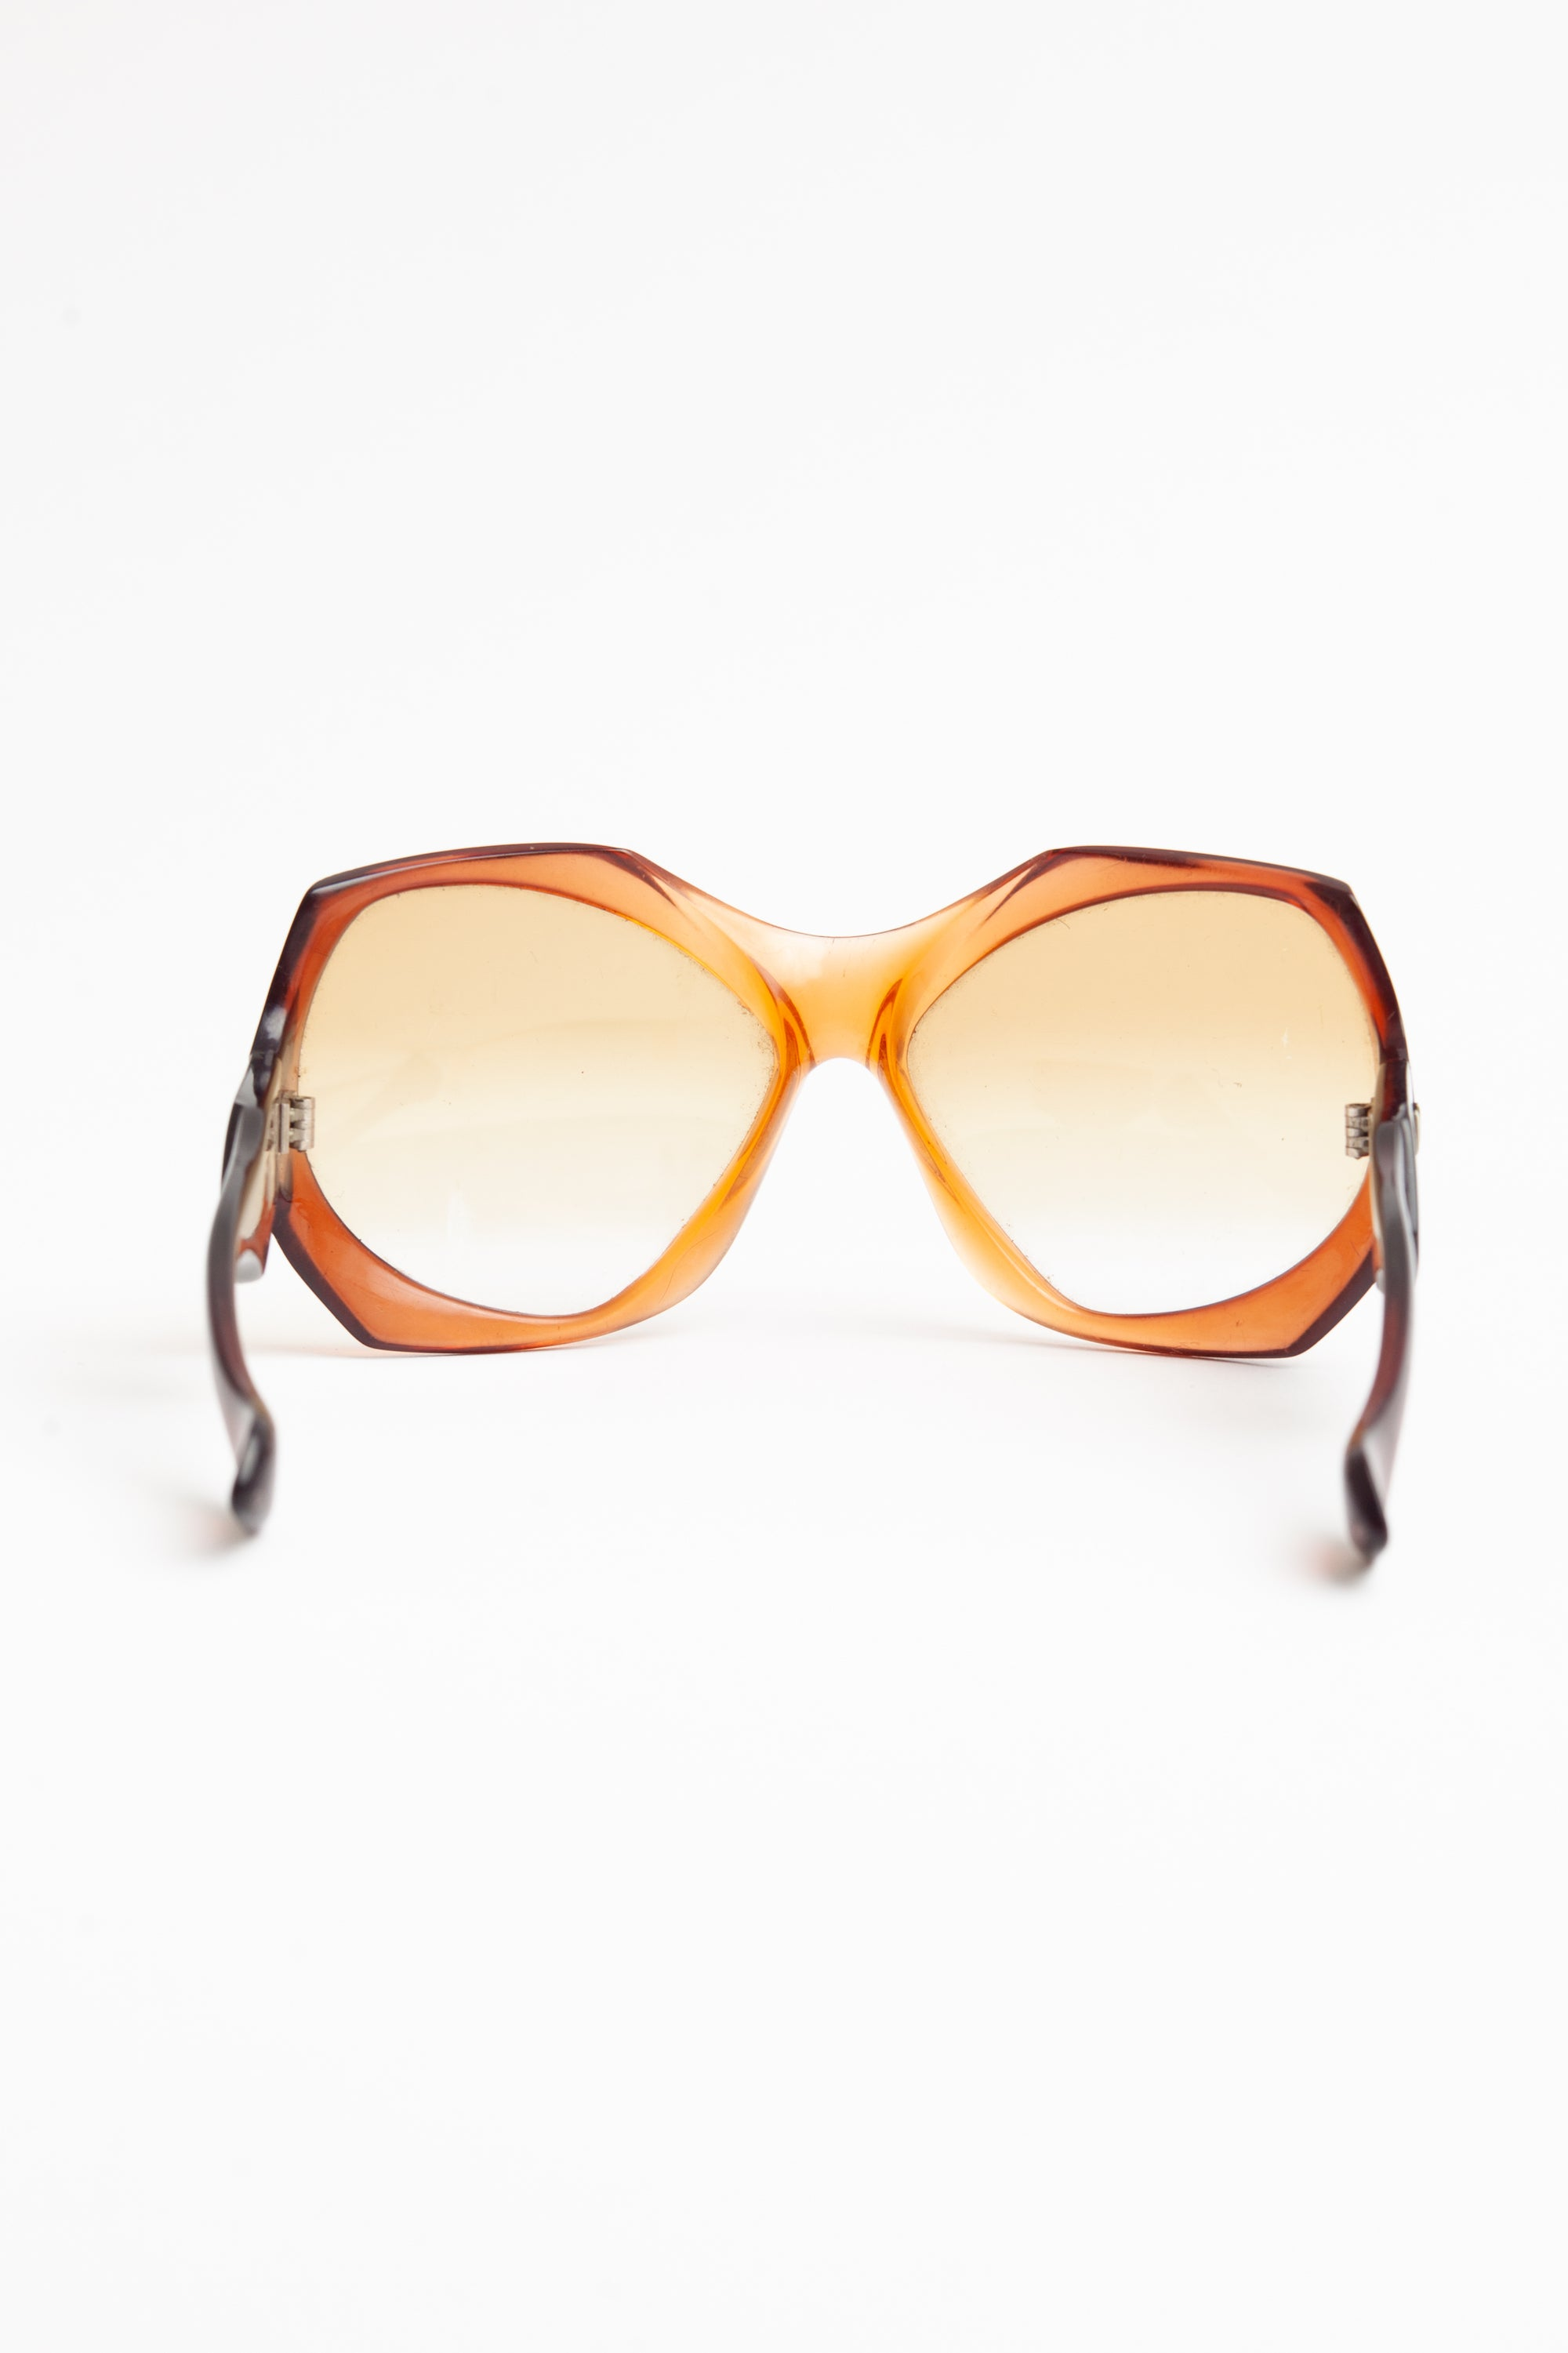 Yves Saint Laurent <br> c1975 orange oversized frame sunglasses